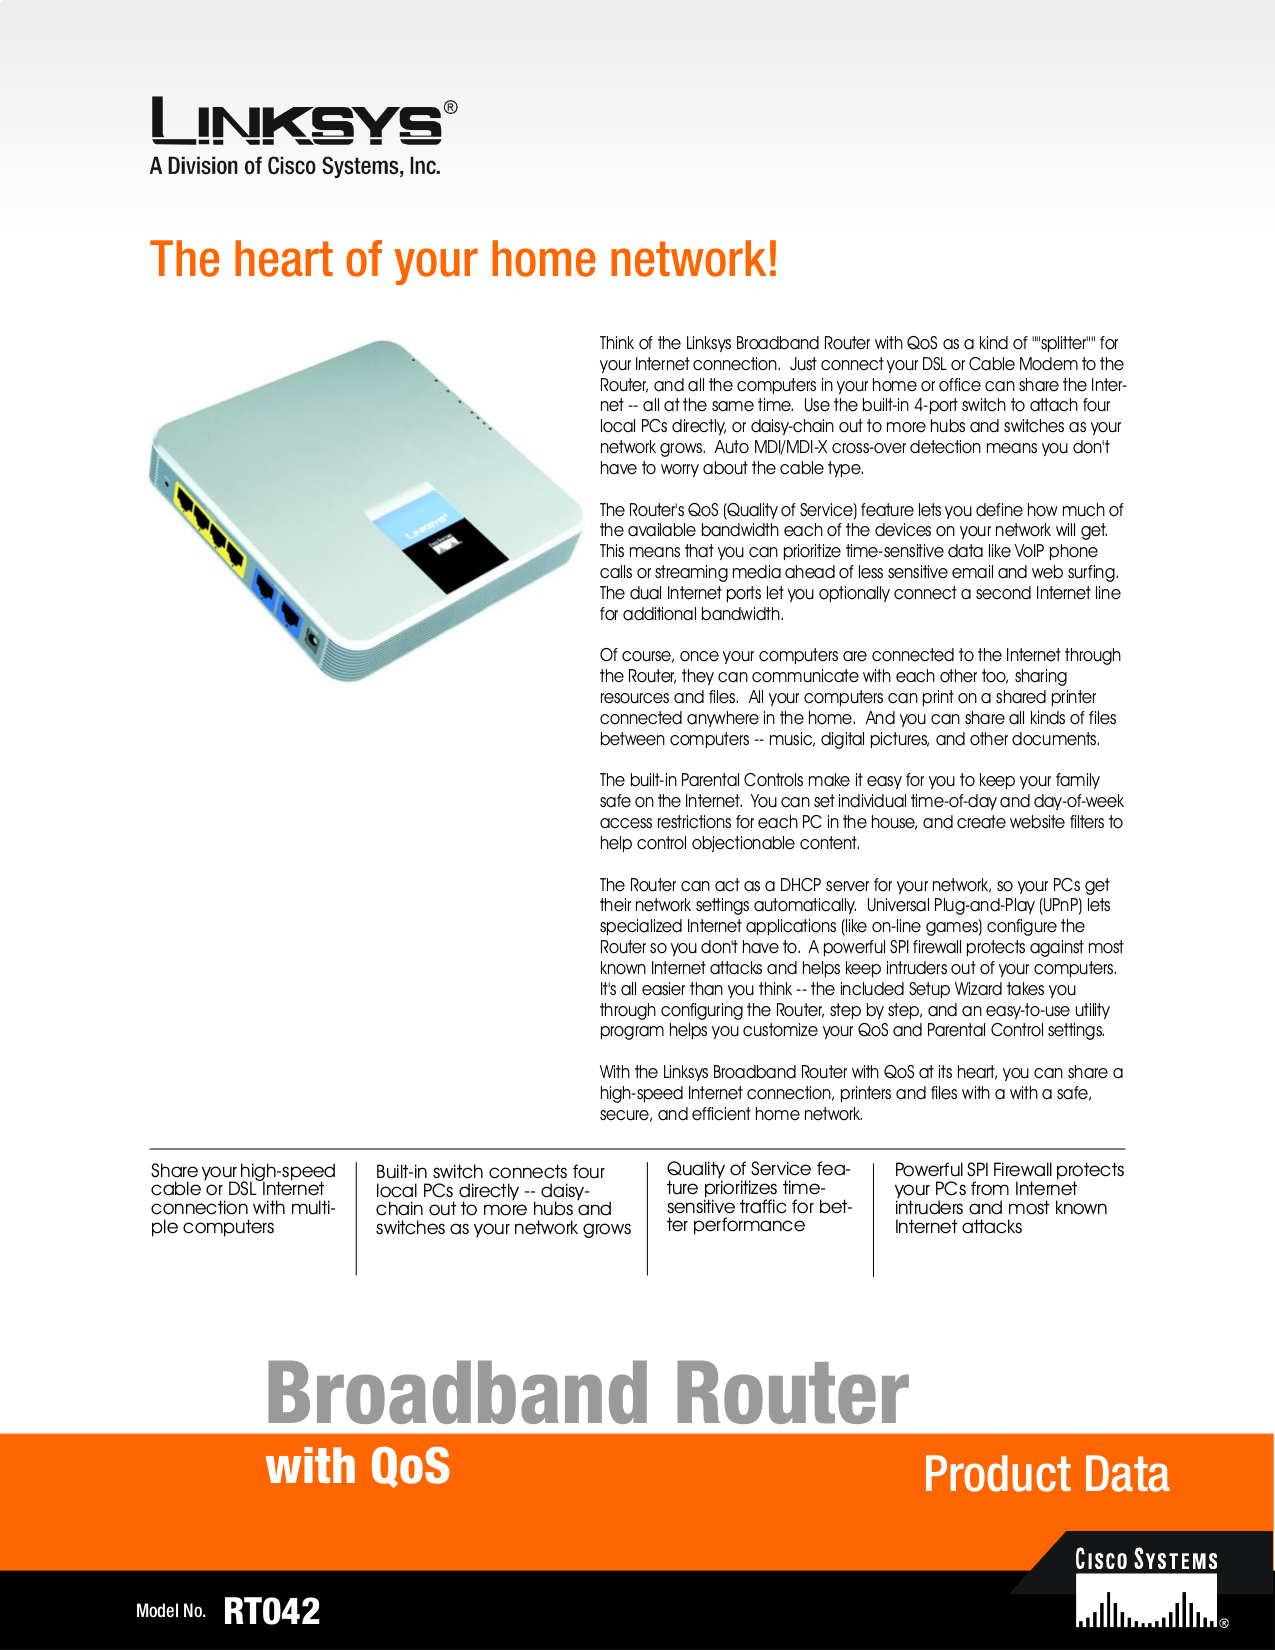 pdf for Linksys Router RT042 manual